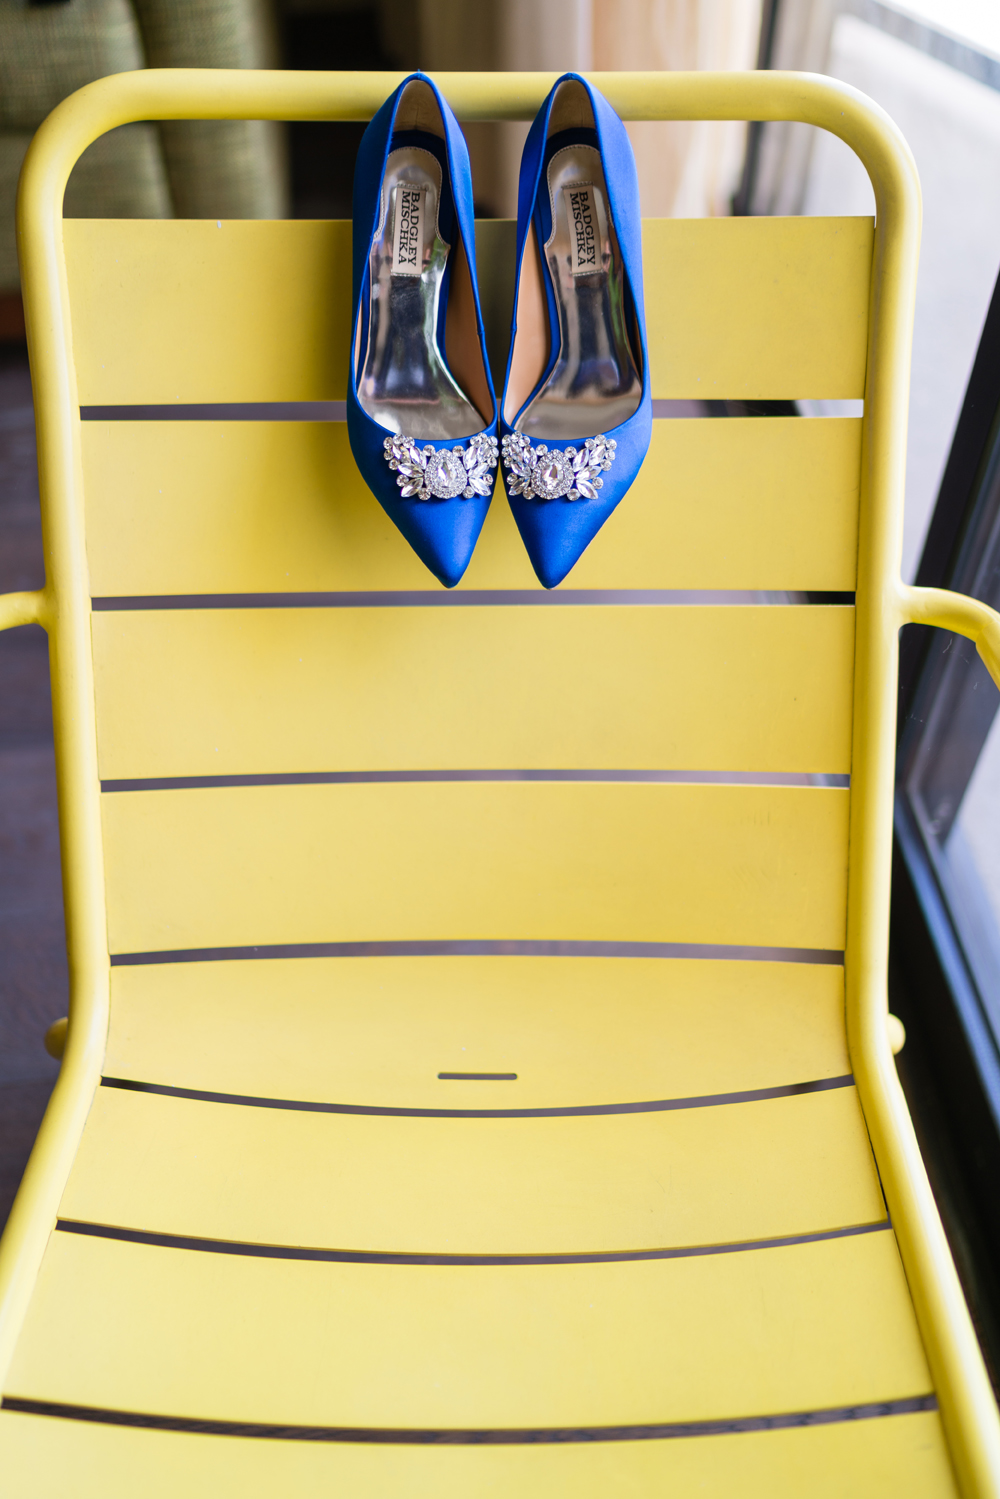 b2b33-lively-navy-yellow-harbor-wedding-bright-blue-shoes-sunny-yellow-chair.jpg